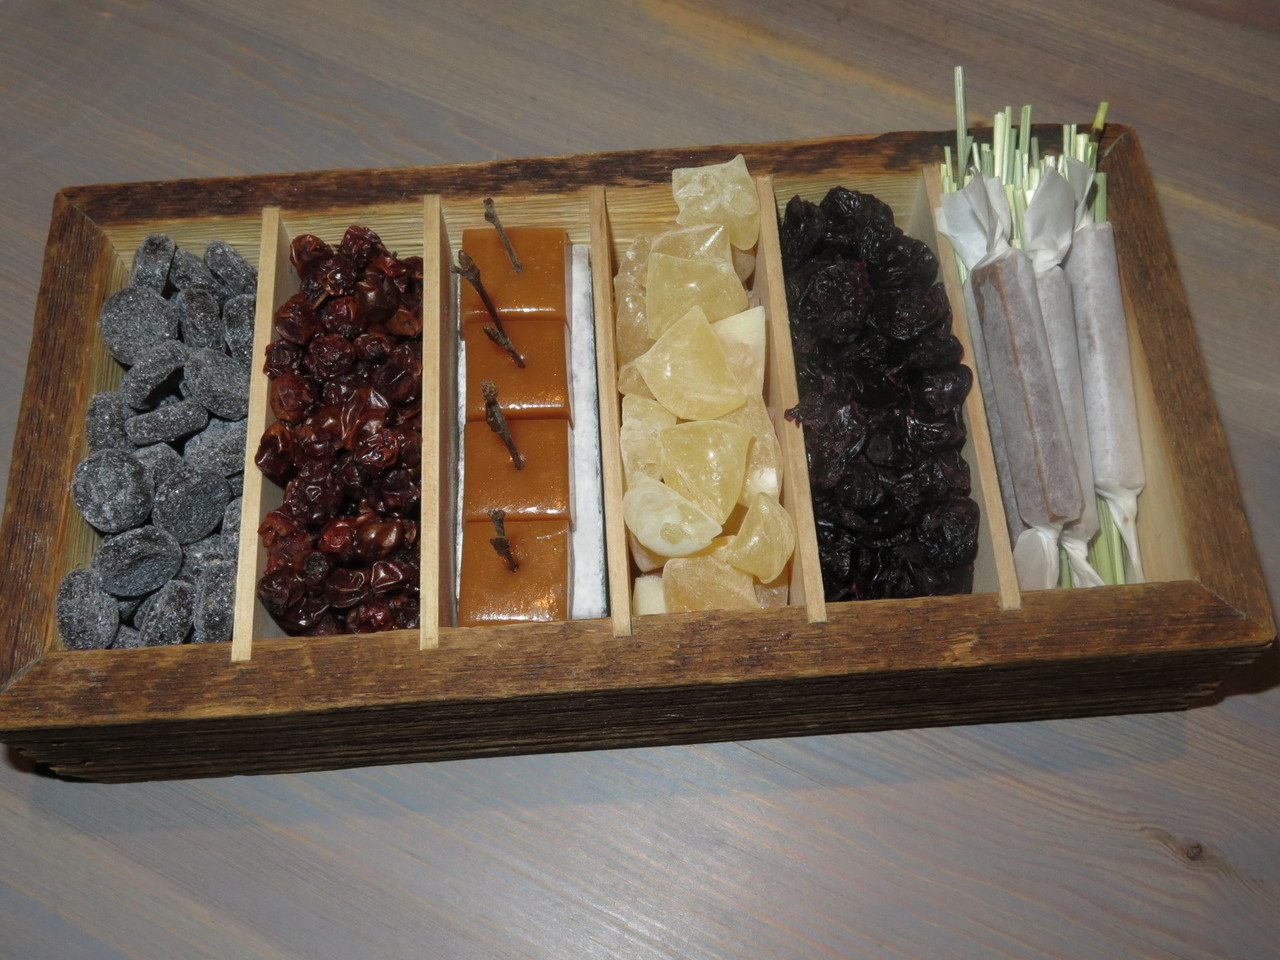 A wooden box filled with tar pastilles, dried rowanberries, smoked caramel, meadowsweet candy, dried black currants, sunflower seed nougat